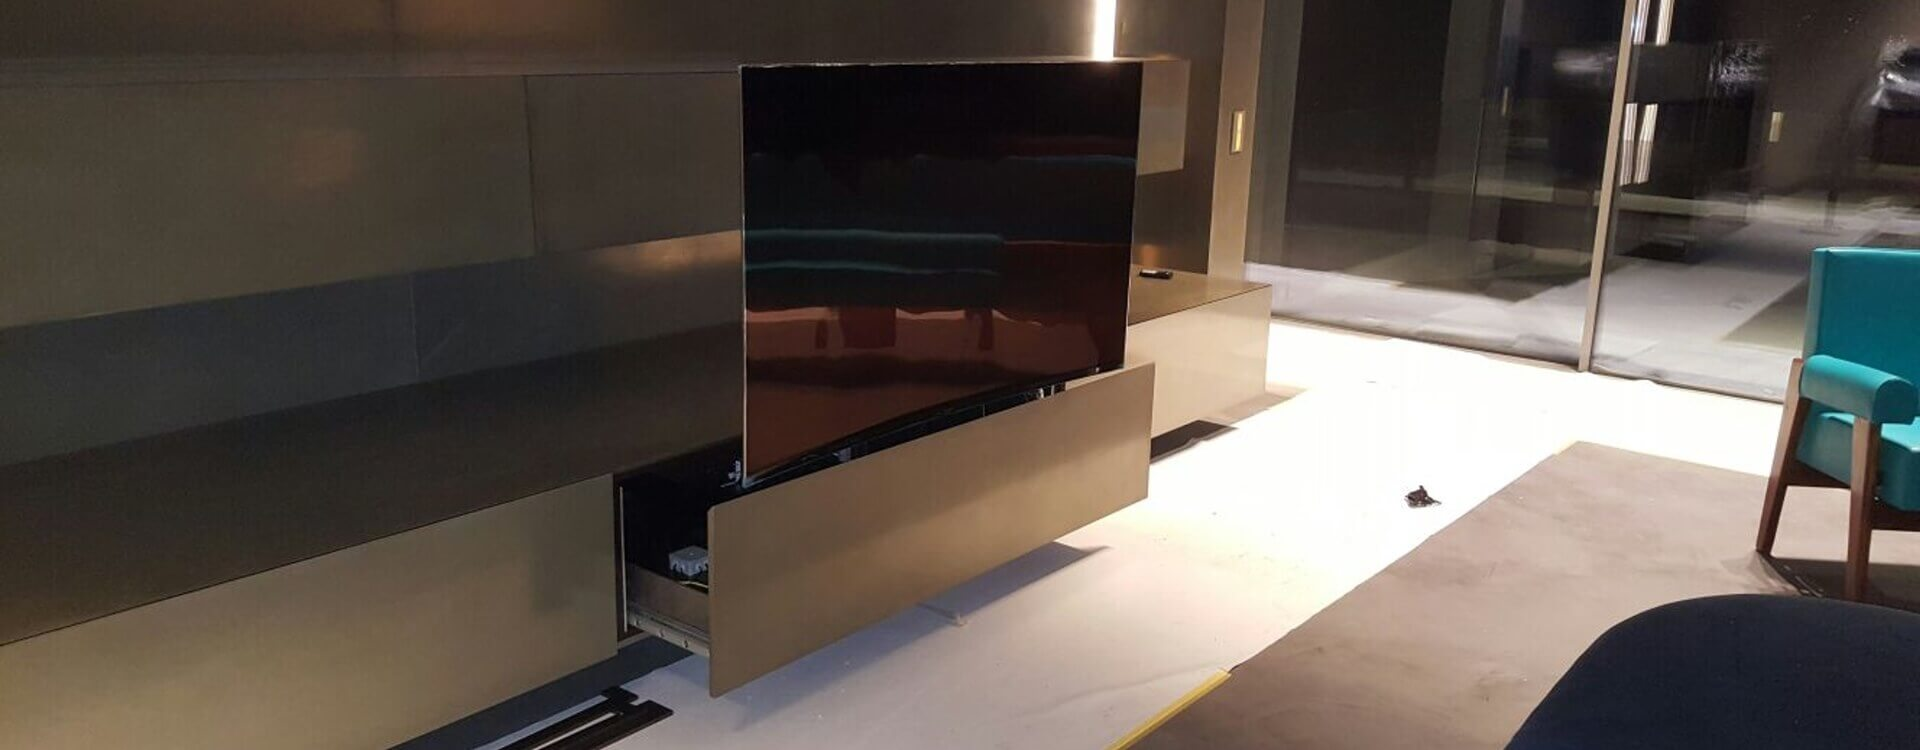 TV-Lift-Schublade